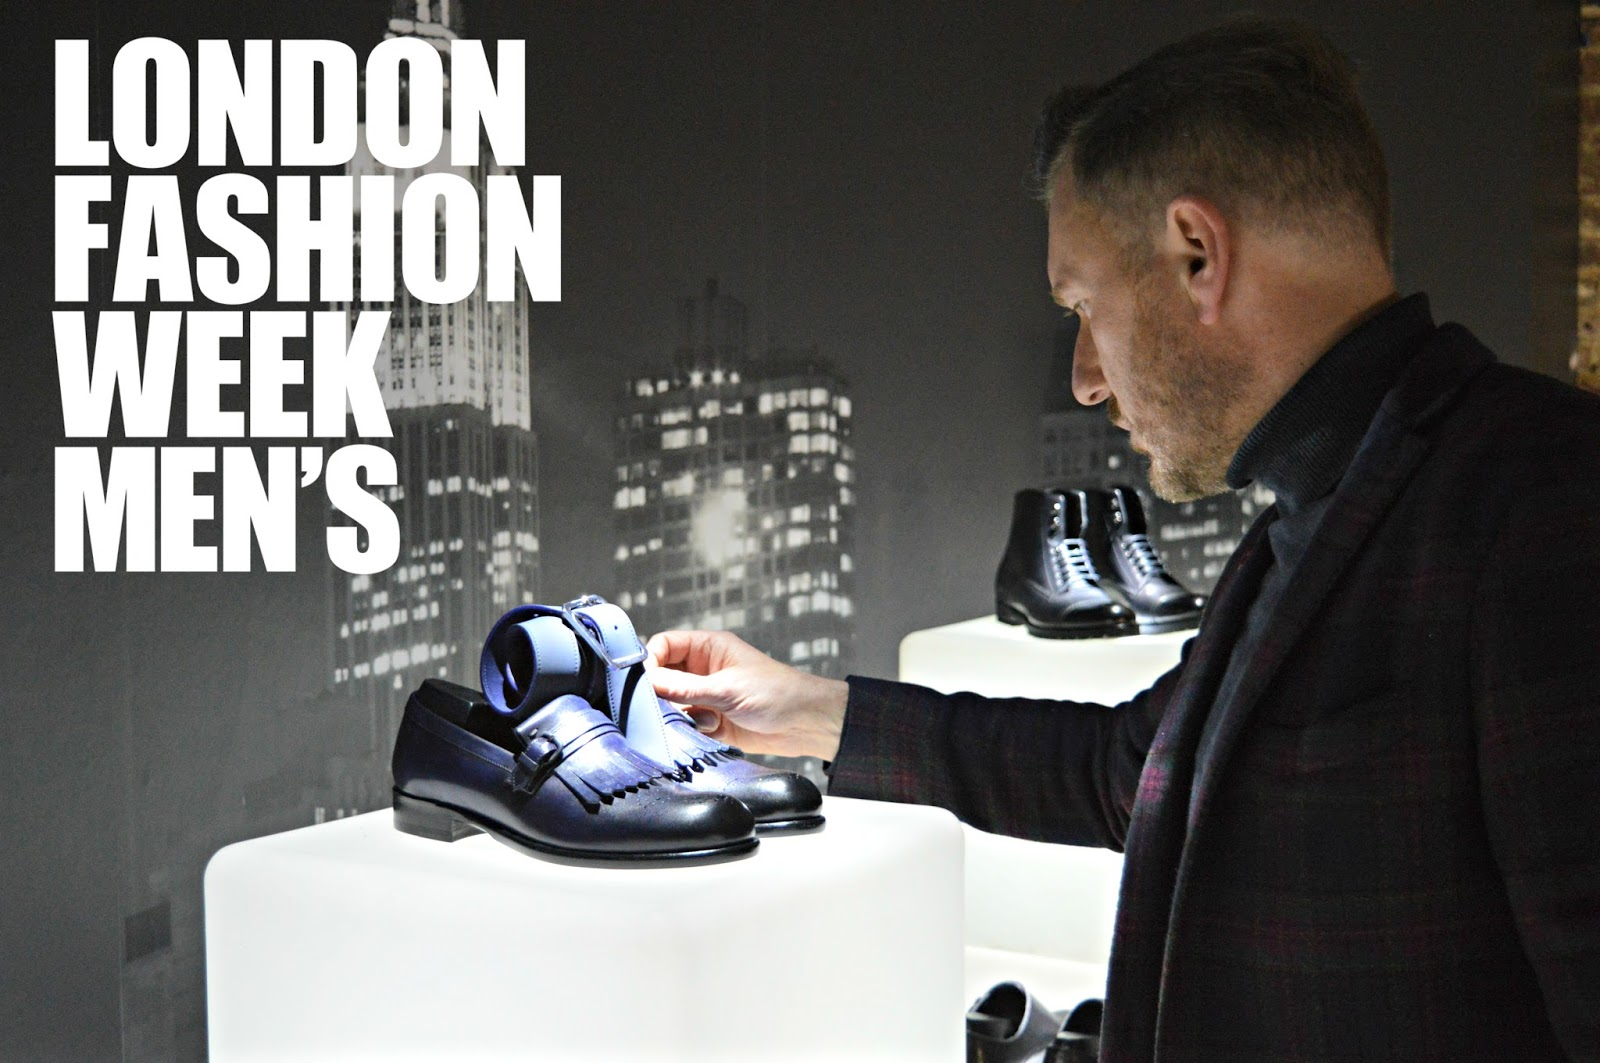 11376cc52346 Craig of That Dapper Chap takes us around the shows and presentations on  day one of this seasons London Fashion Week Men s